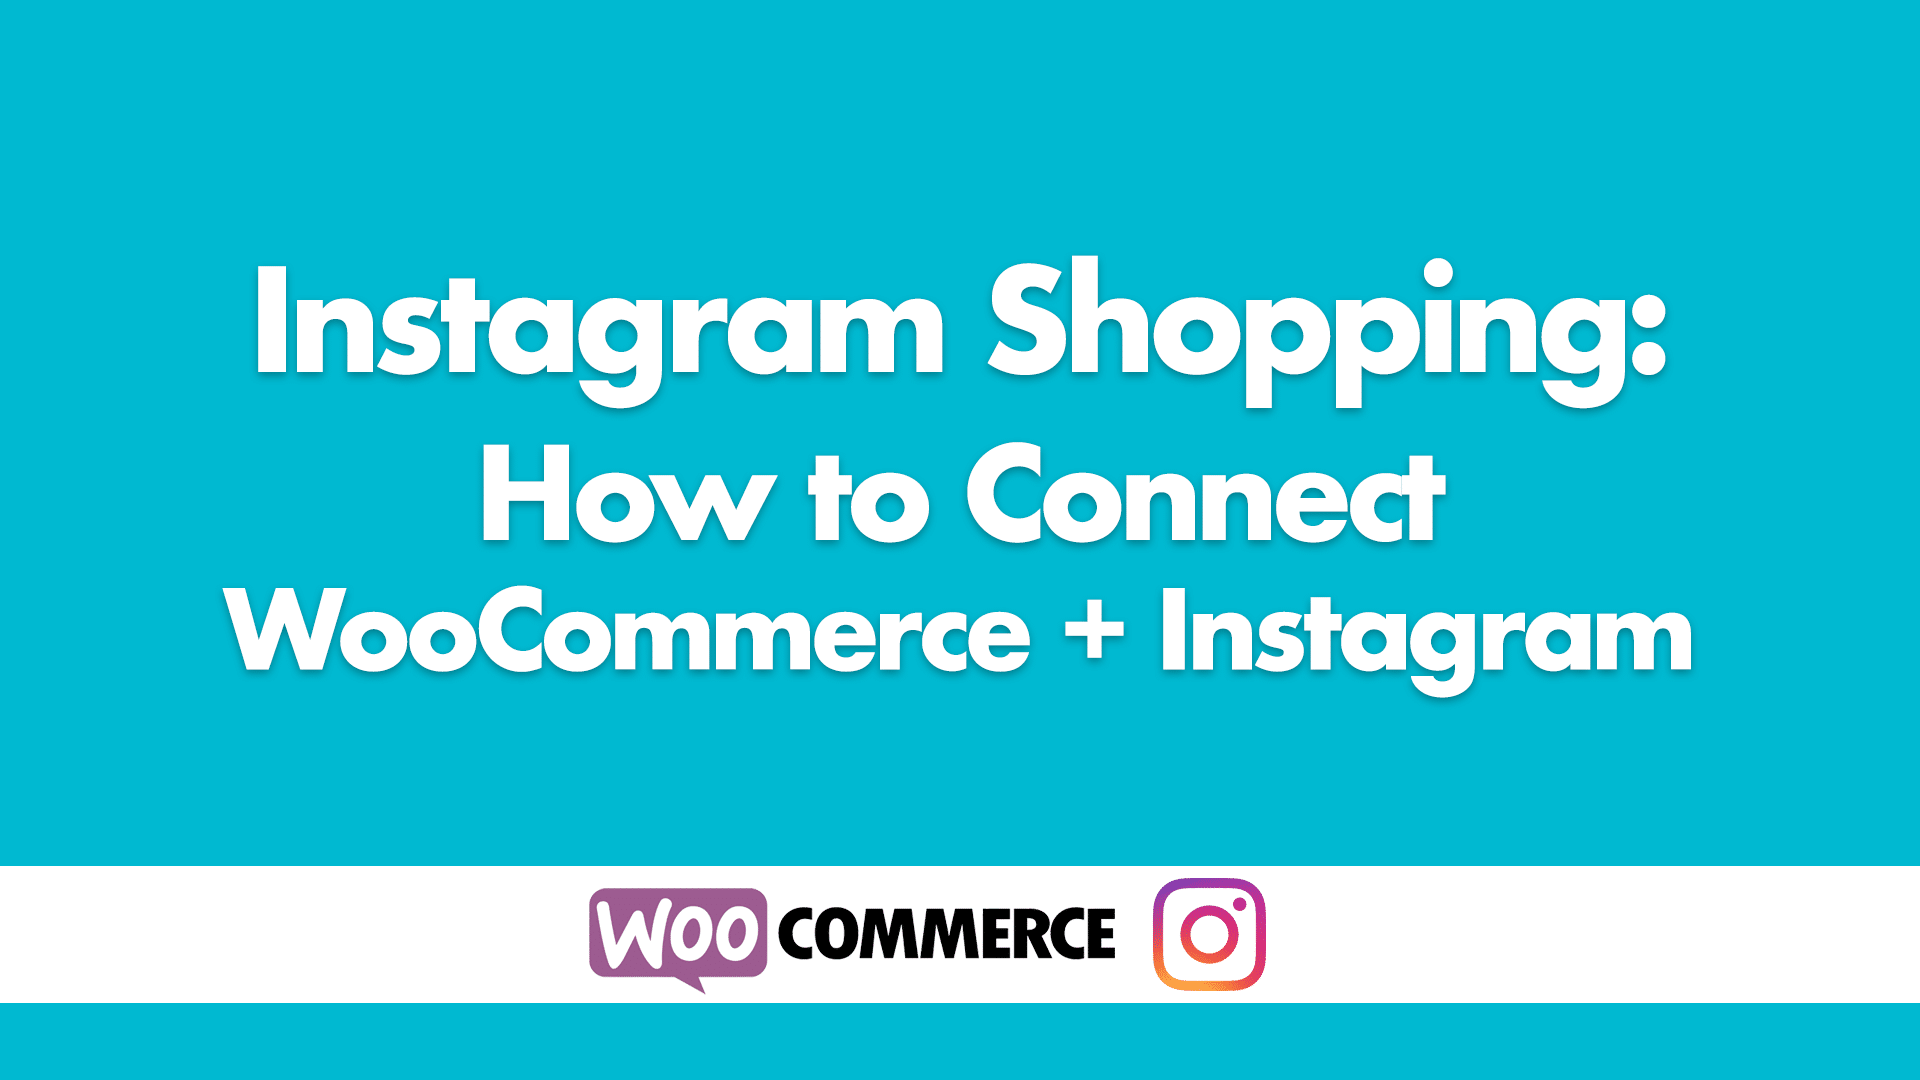 How to Connect Instagram to WooCommerce